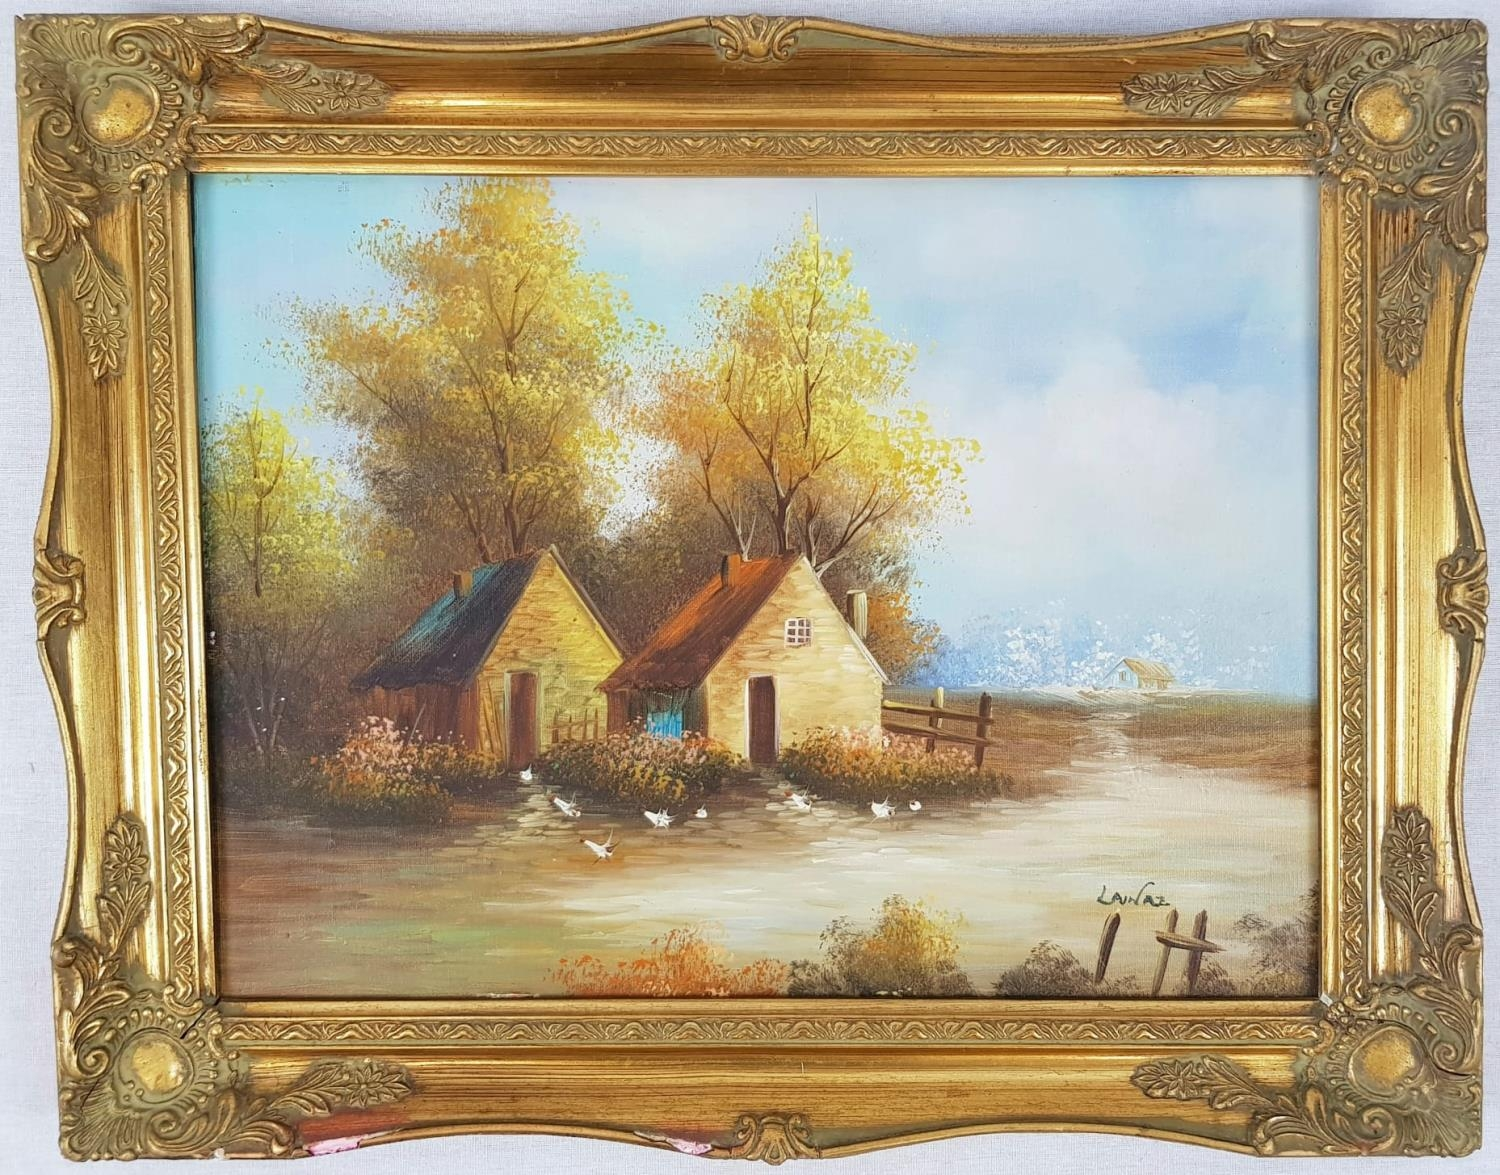 Oil on Canvas - Twin Cottages in Autumn. Signed by unknown artist, gilded frame. 50 x 39cm